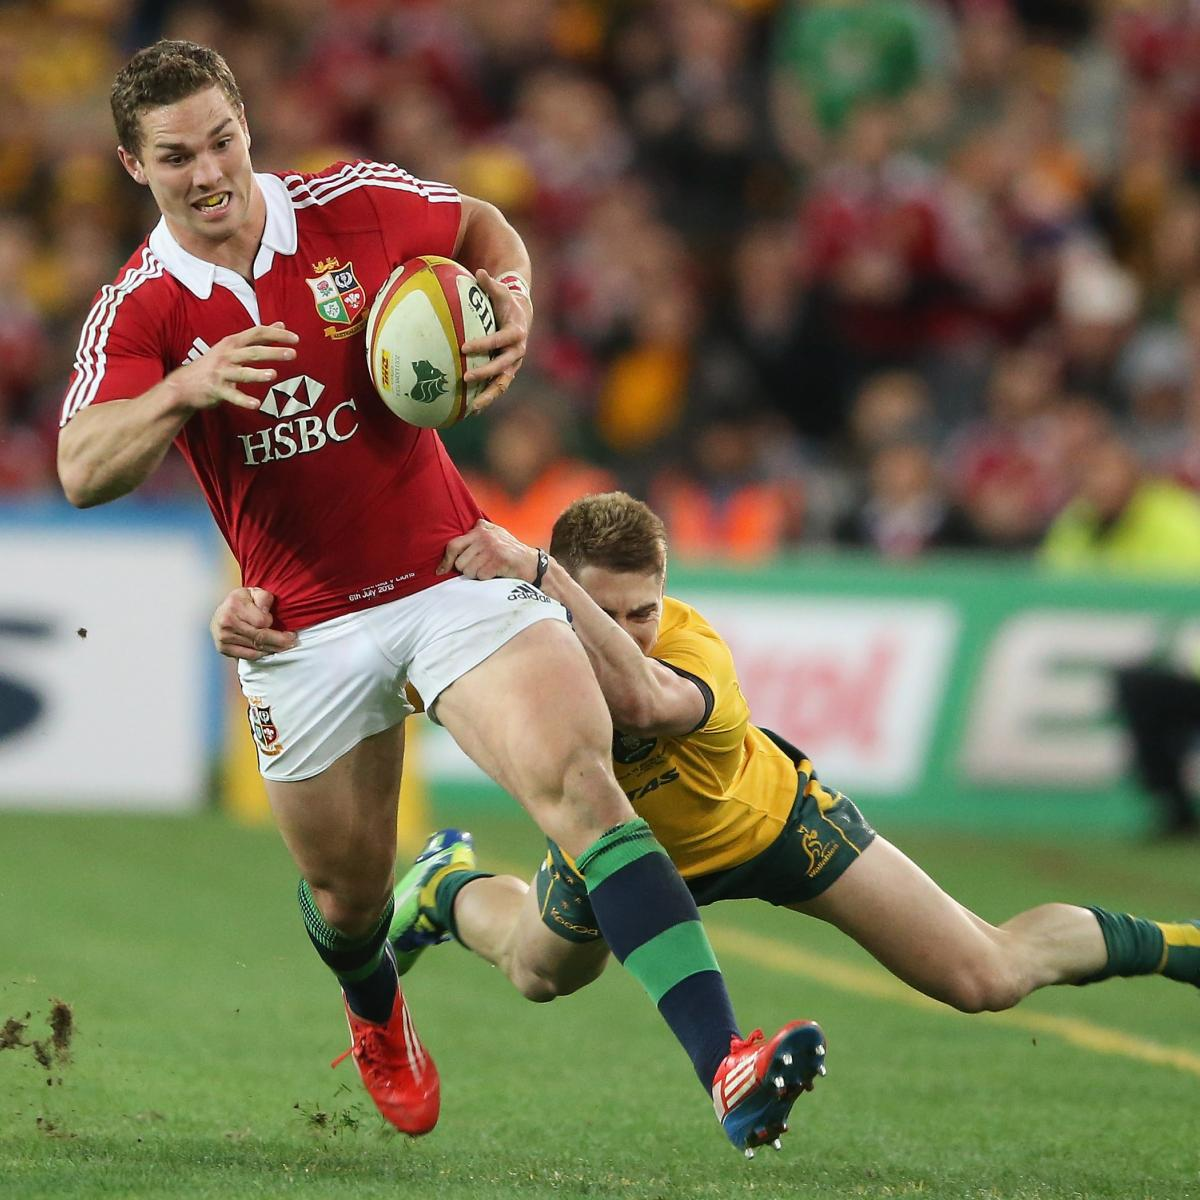 English Rugby Player To Nfl: Club Rugby: George North, Bryan Habana And Other Transfers